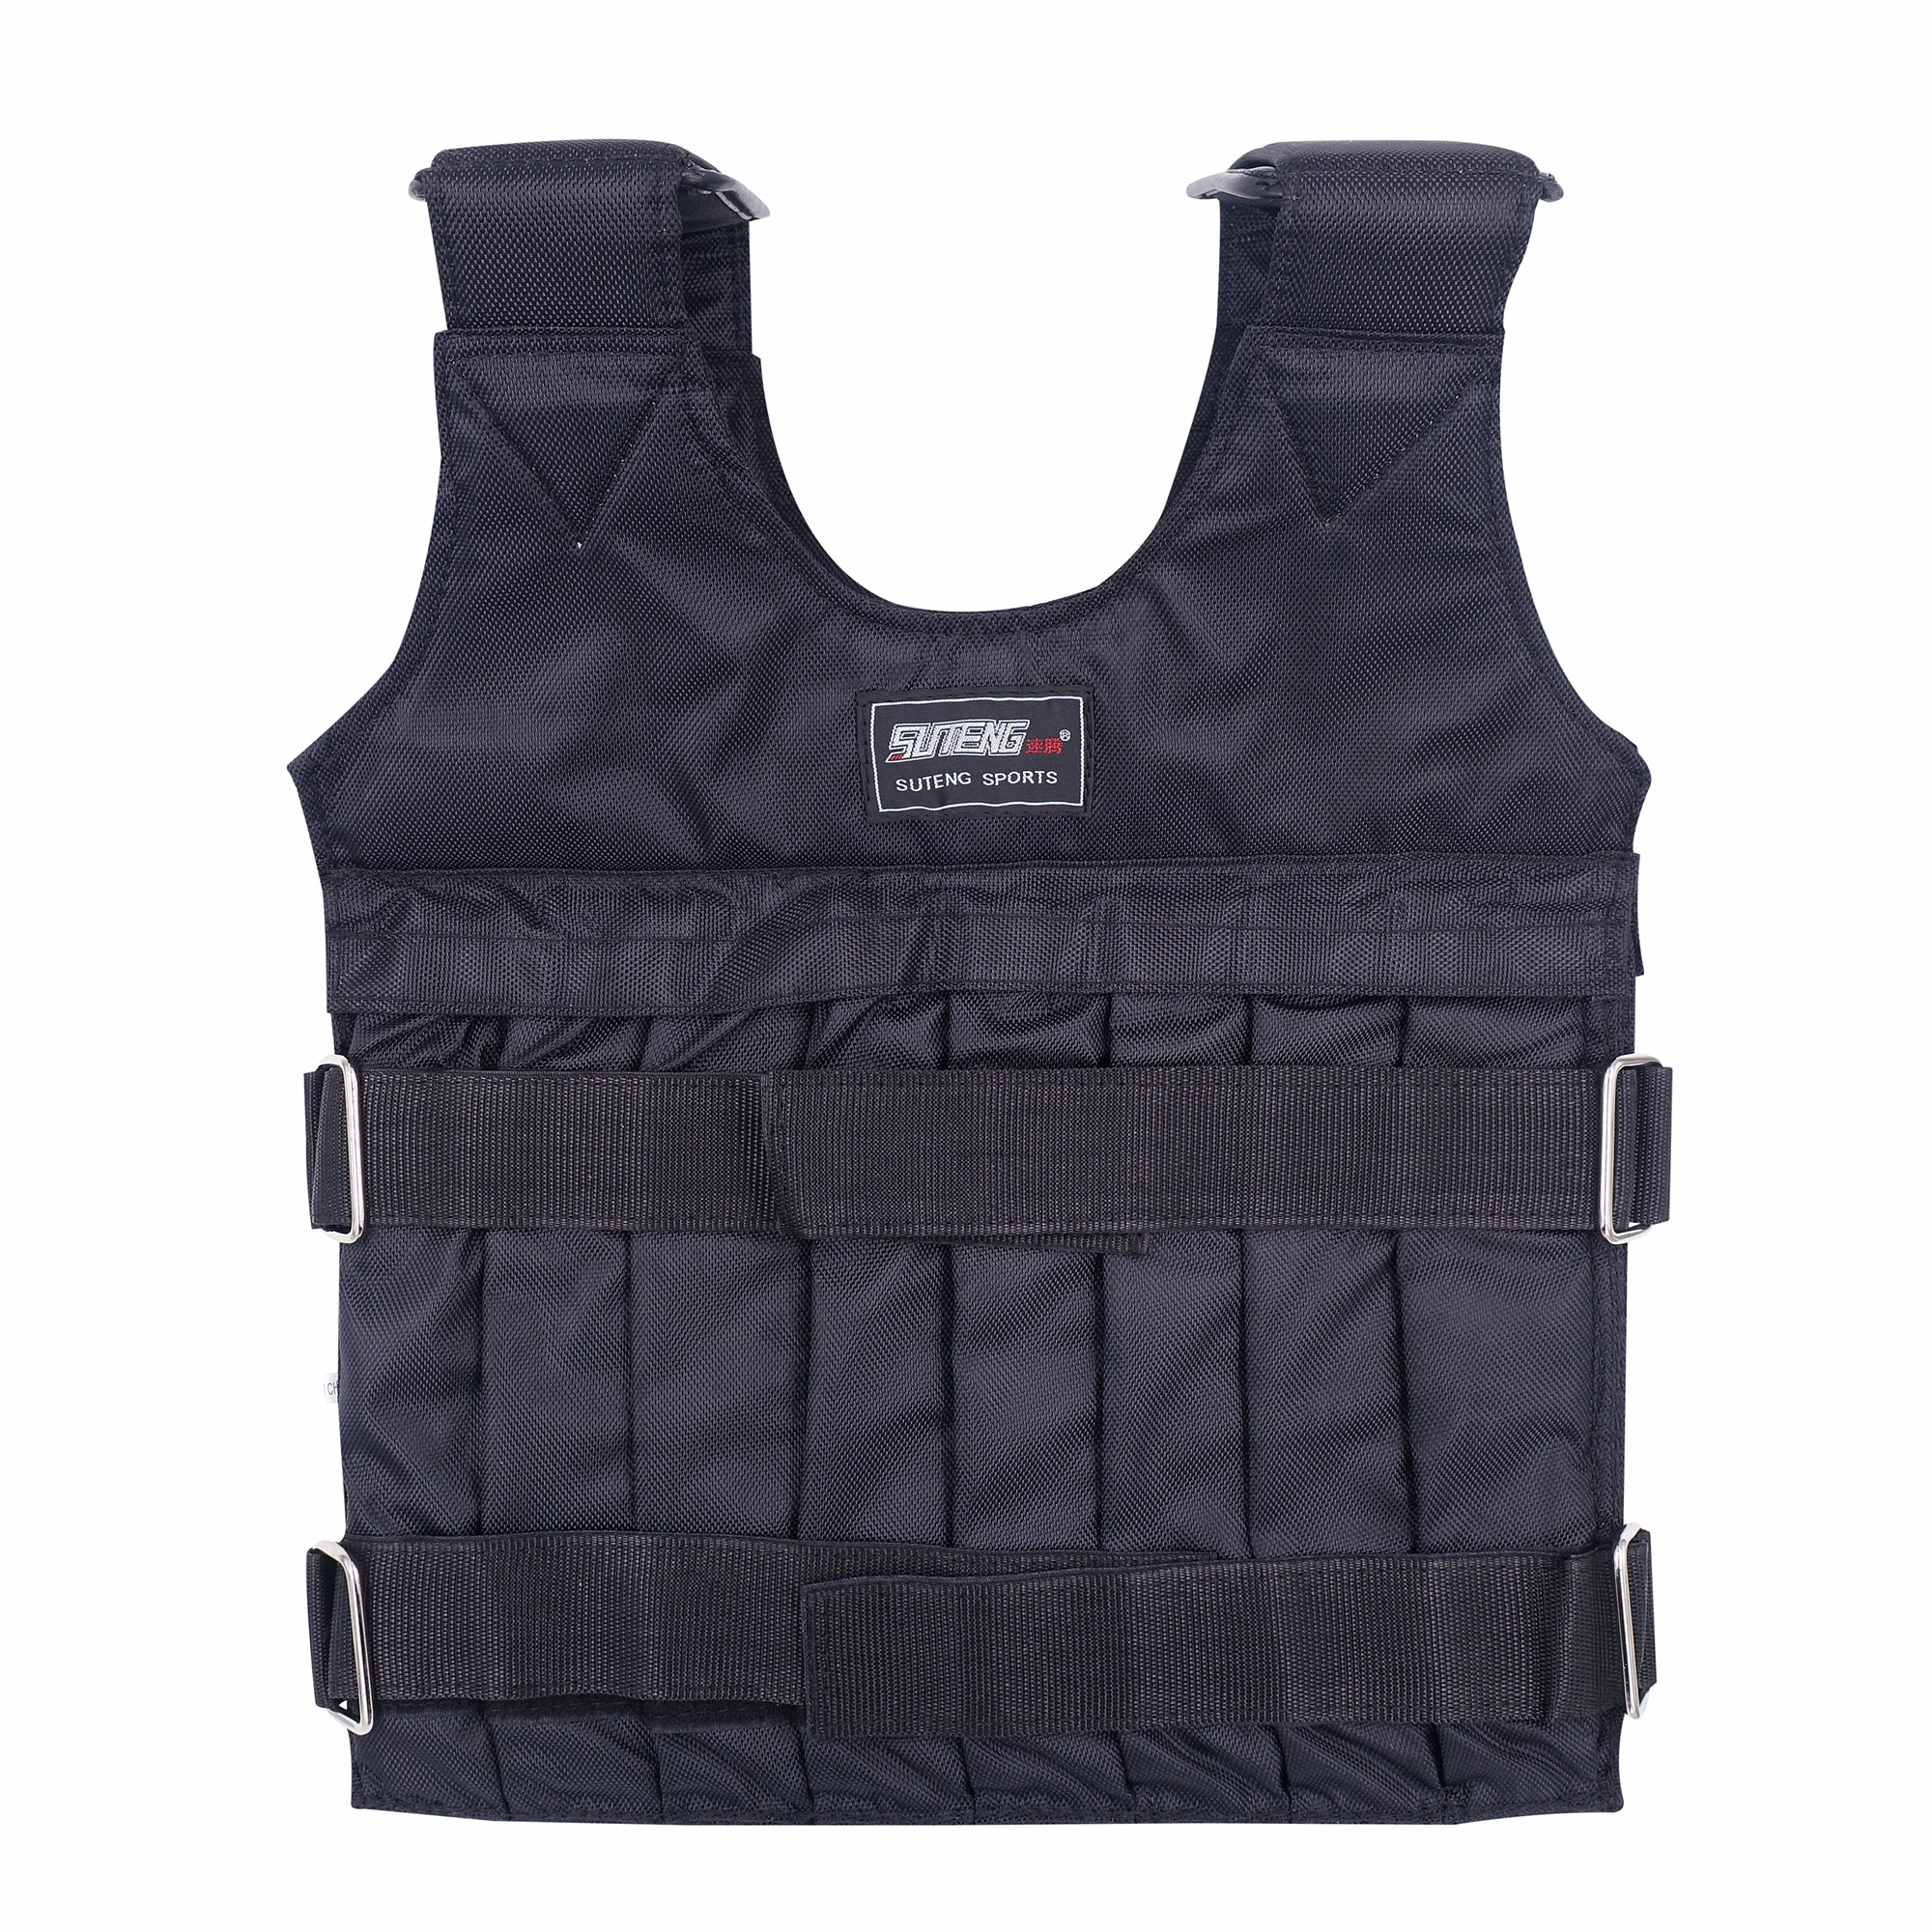 Yinguo Weighted Vest Xmas Sale Weighted Jacket Adjustable Weight Max Load 50kg//110lbs with 12 bags for Men Women Kid Home Gym Fitness Losing Weight Lifting Strength Training Boxing Exercise Workout